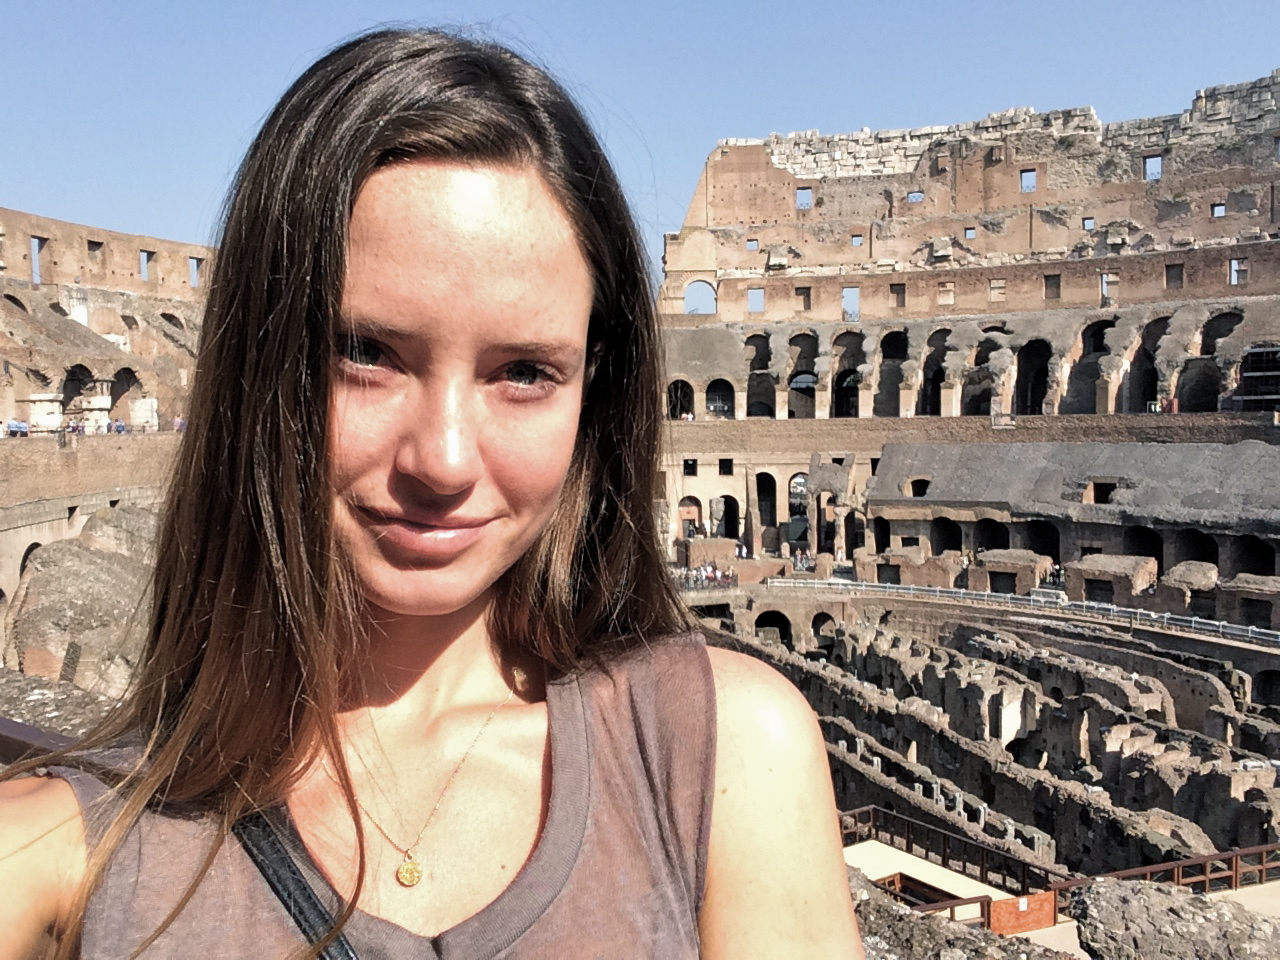 ◆ Selfie at Colosseum for good measure